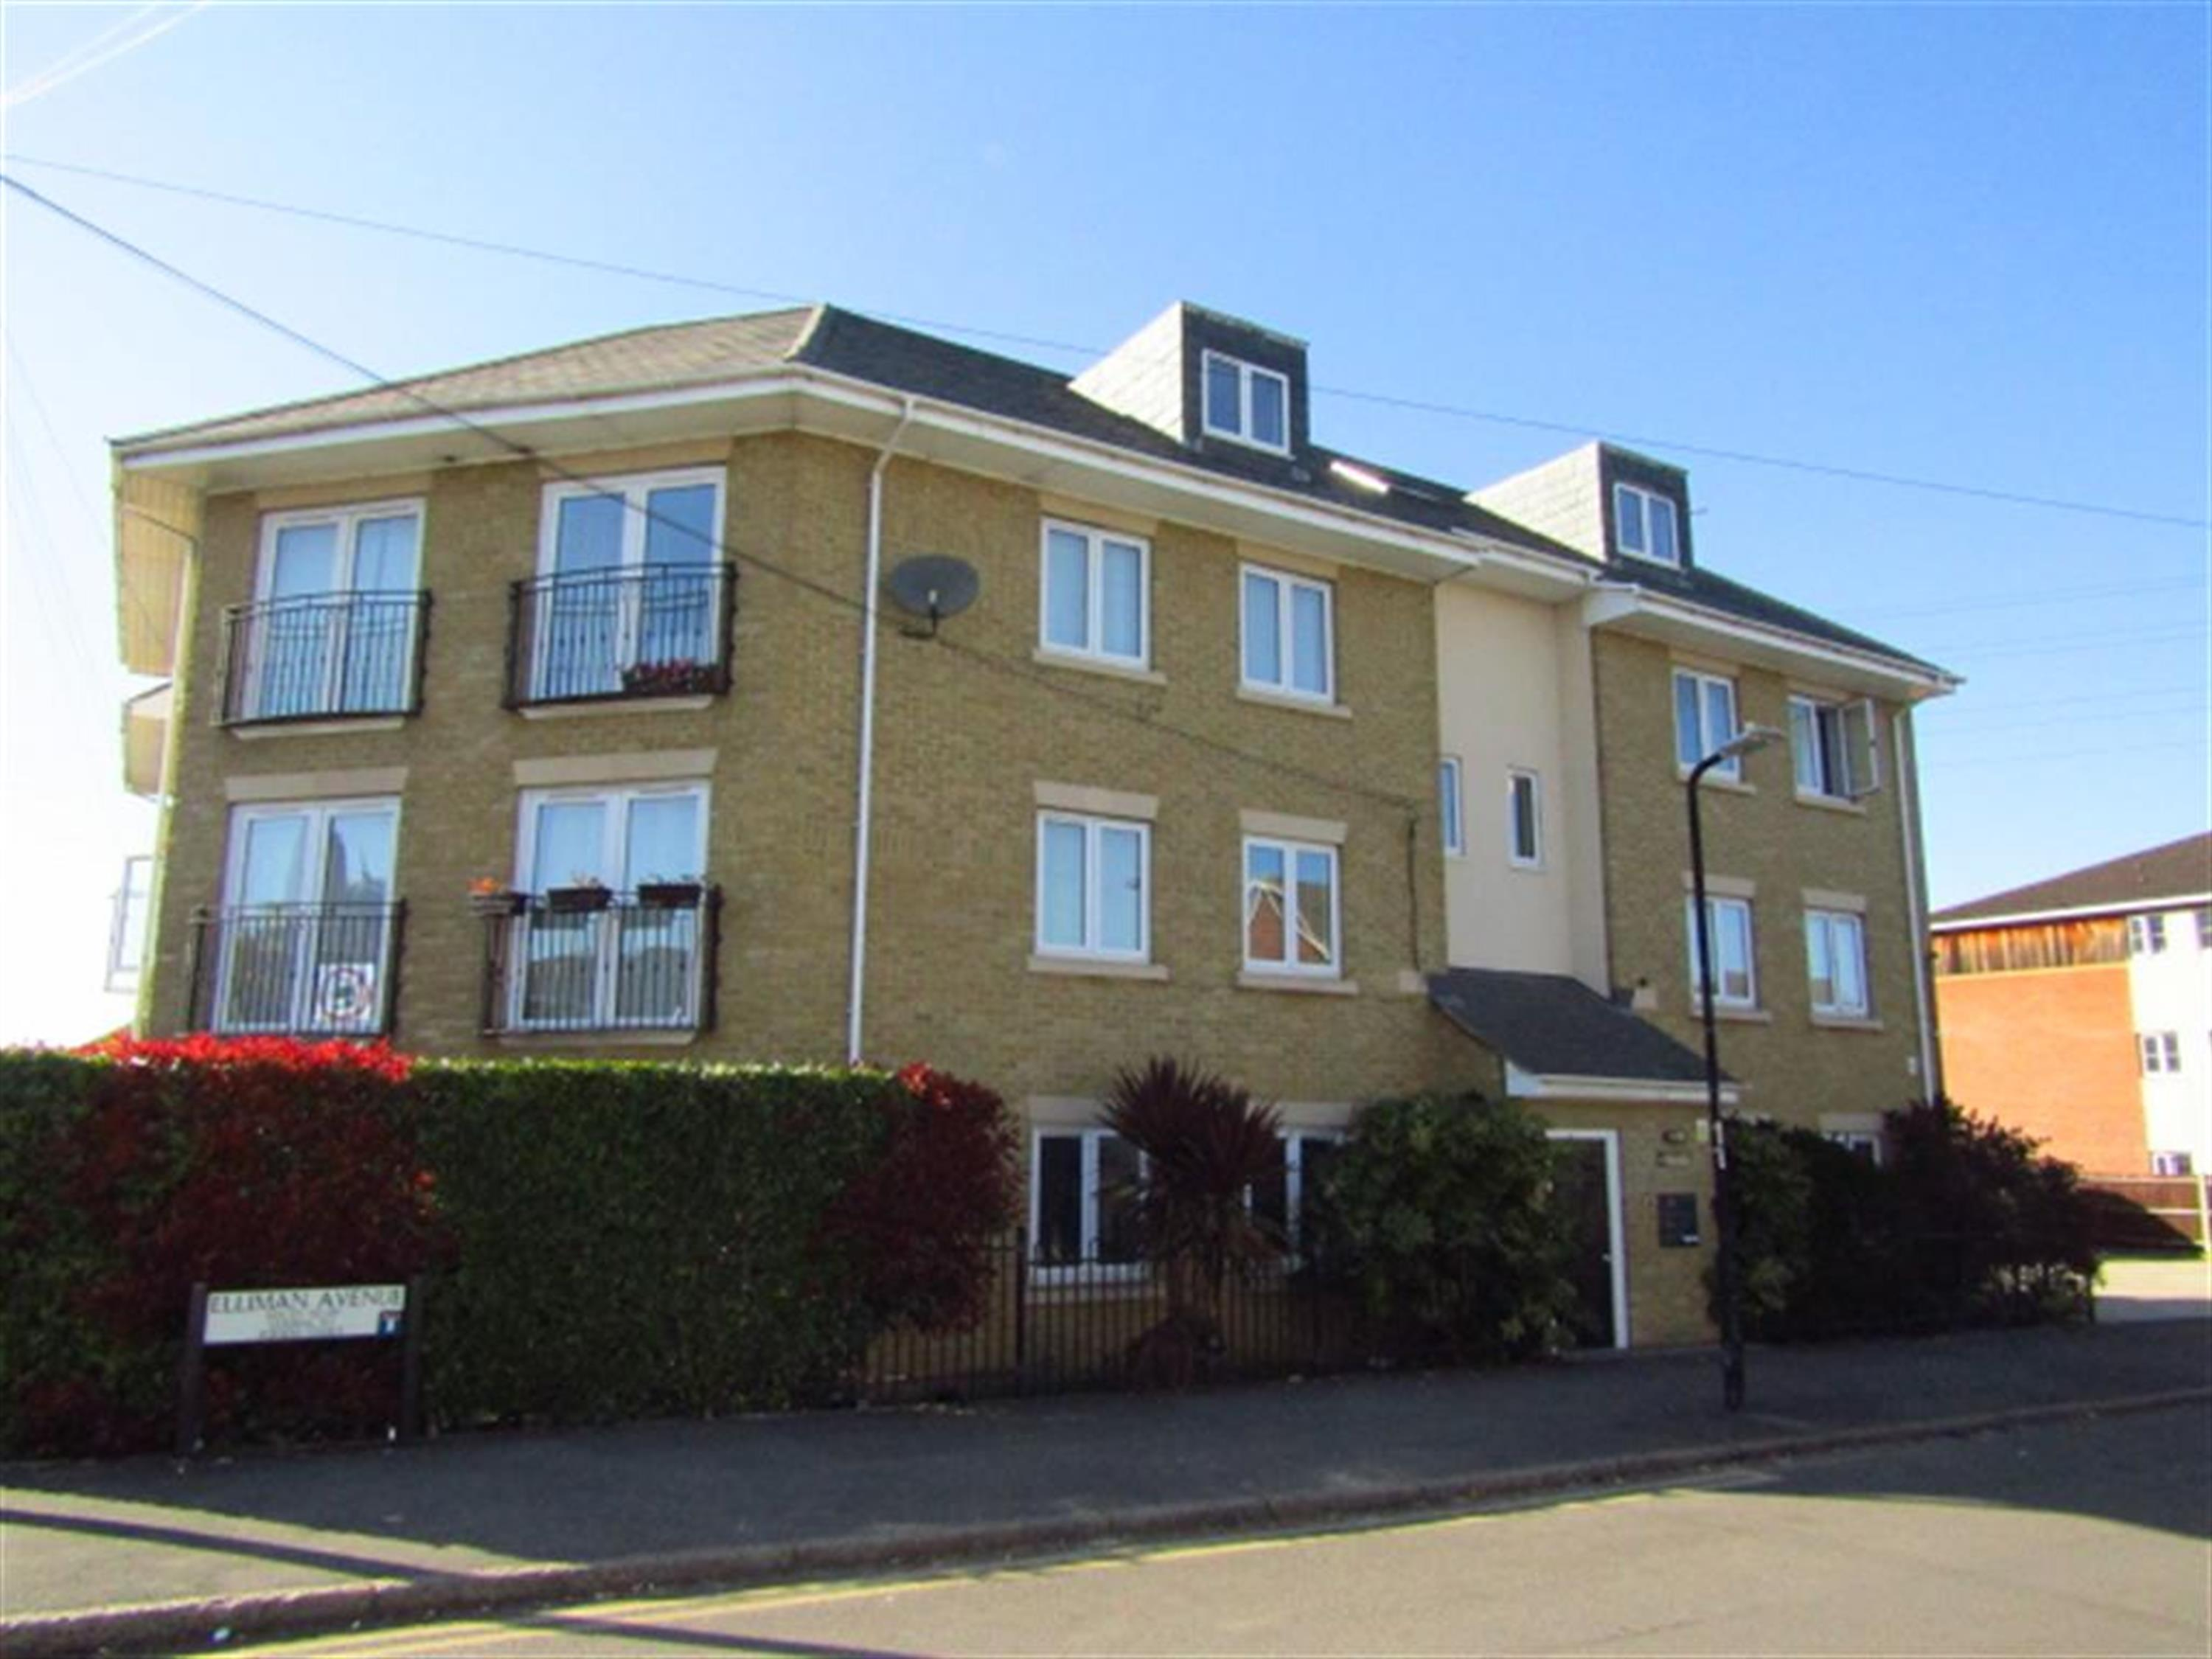 Goldsmith Court , Elliman Avenue , Slough, SL2 5FG